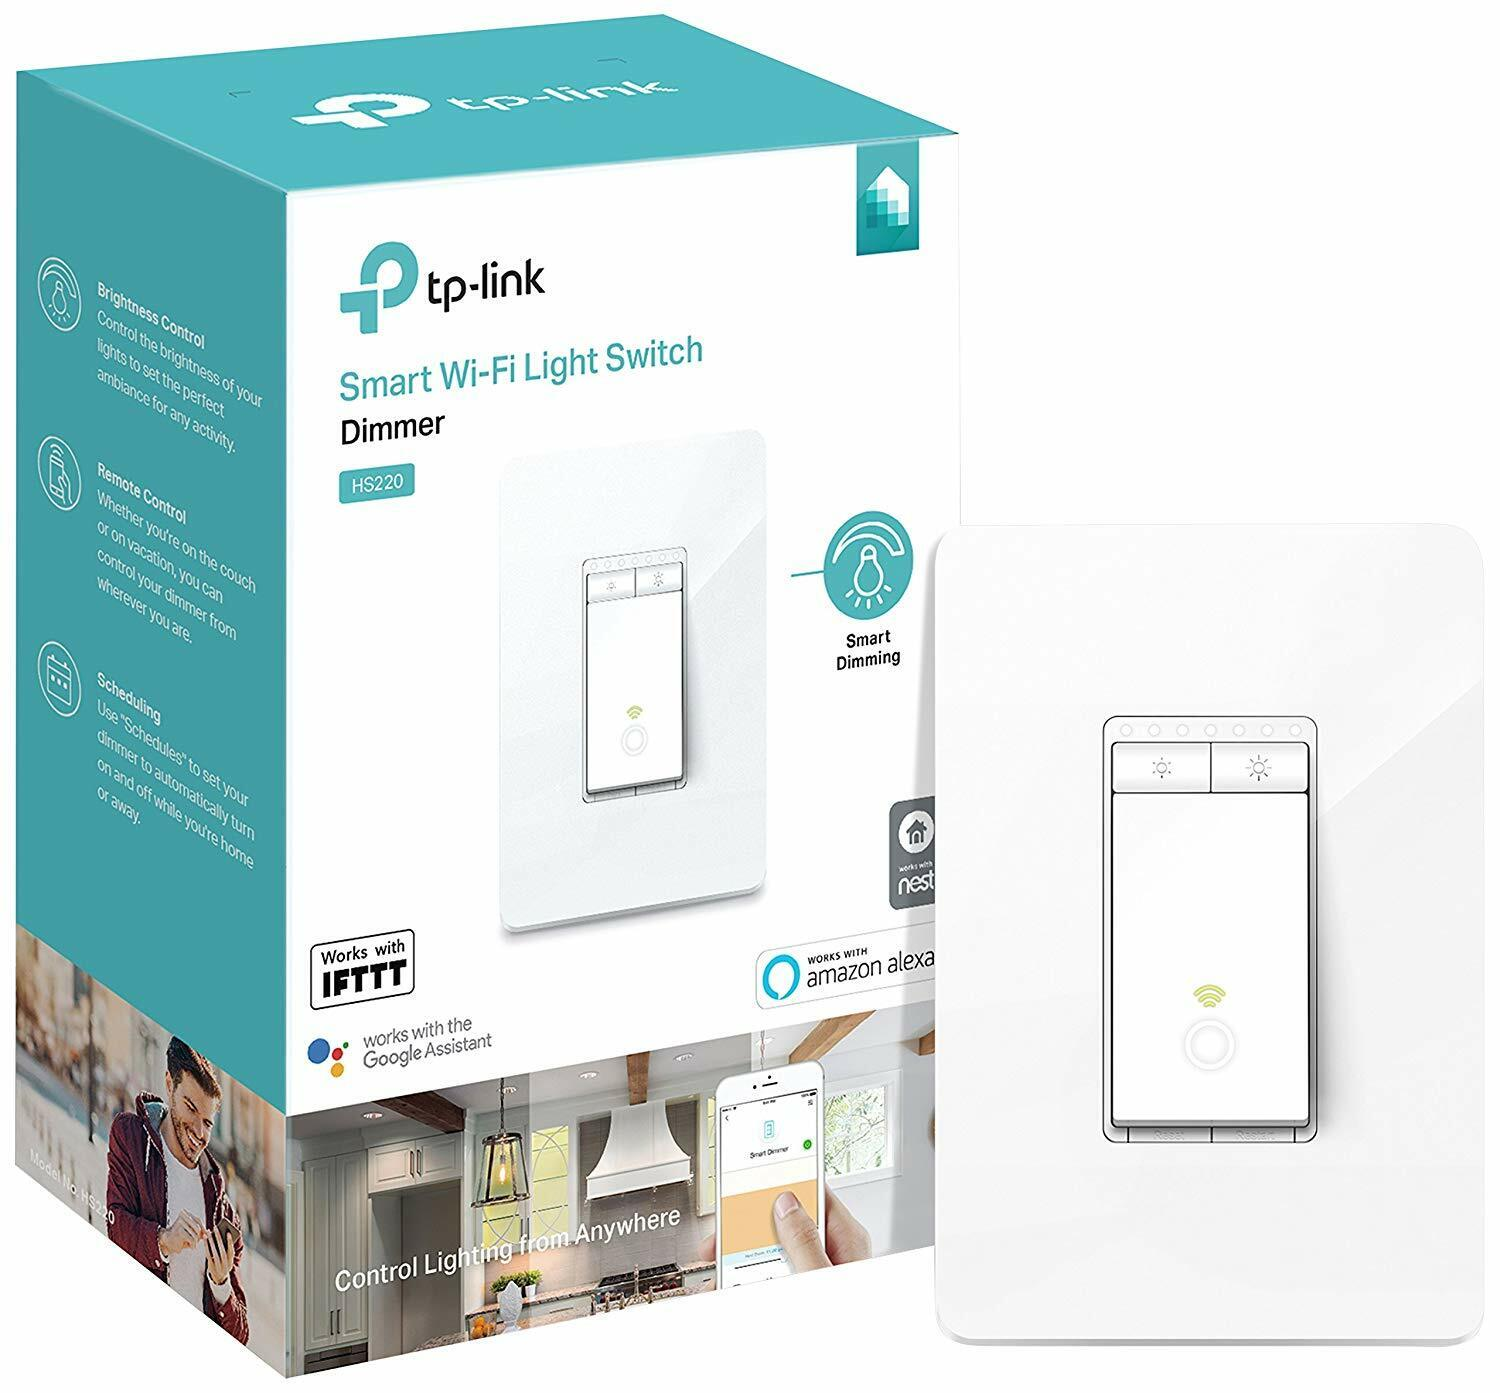 Smart light switch alexa drive medical bathroom safety shower tub bench chair